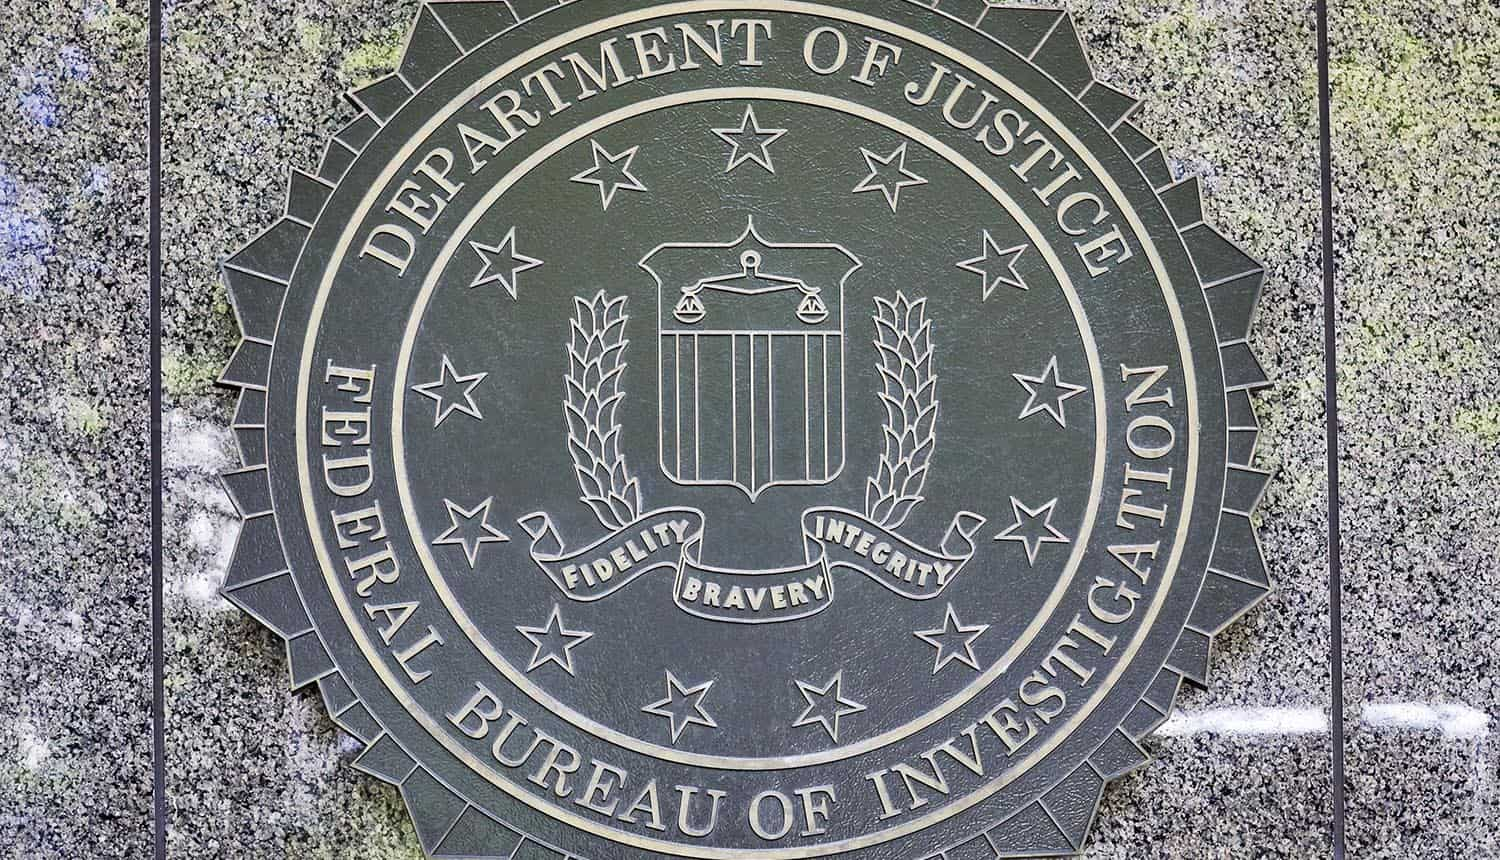 Emblem on the side of the FBI Building showing FISA Court ruling on warrantless surveillance and warning on privacy rules